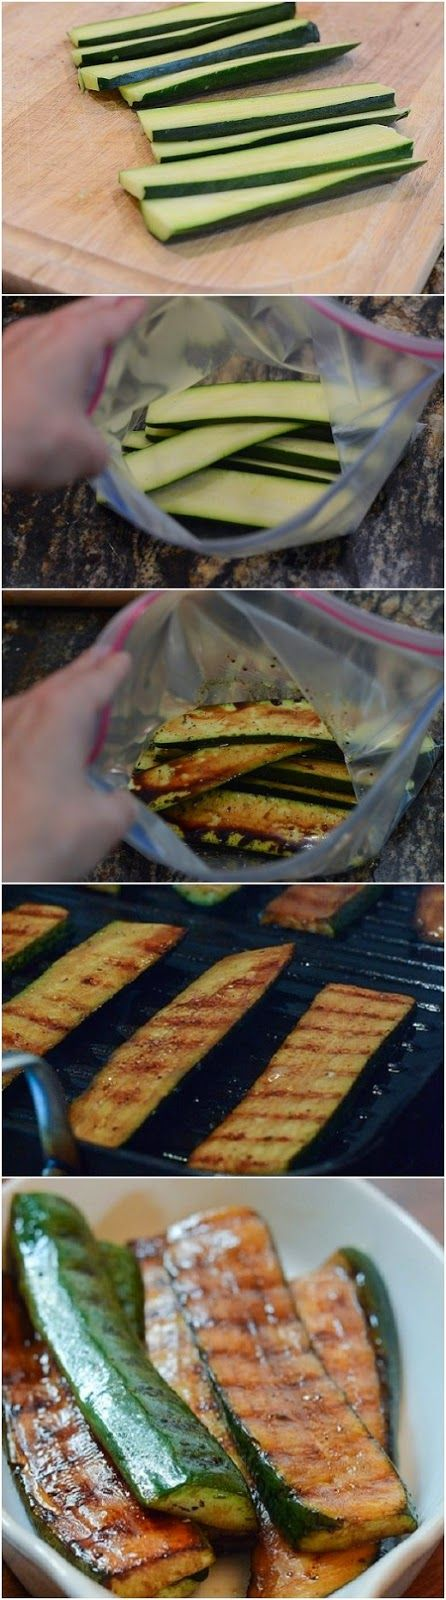 Super Stuffz: Balsamic Grilled Zucchini